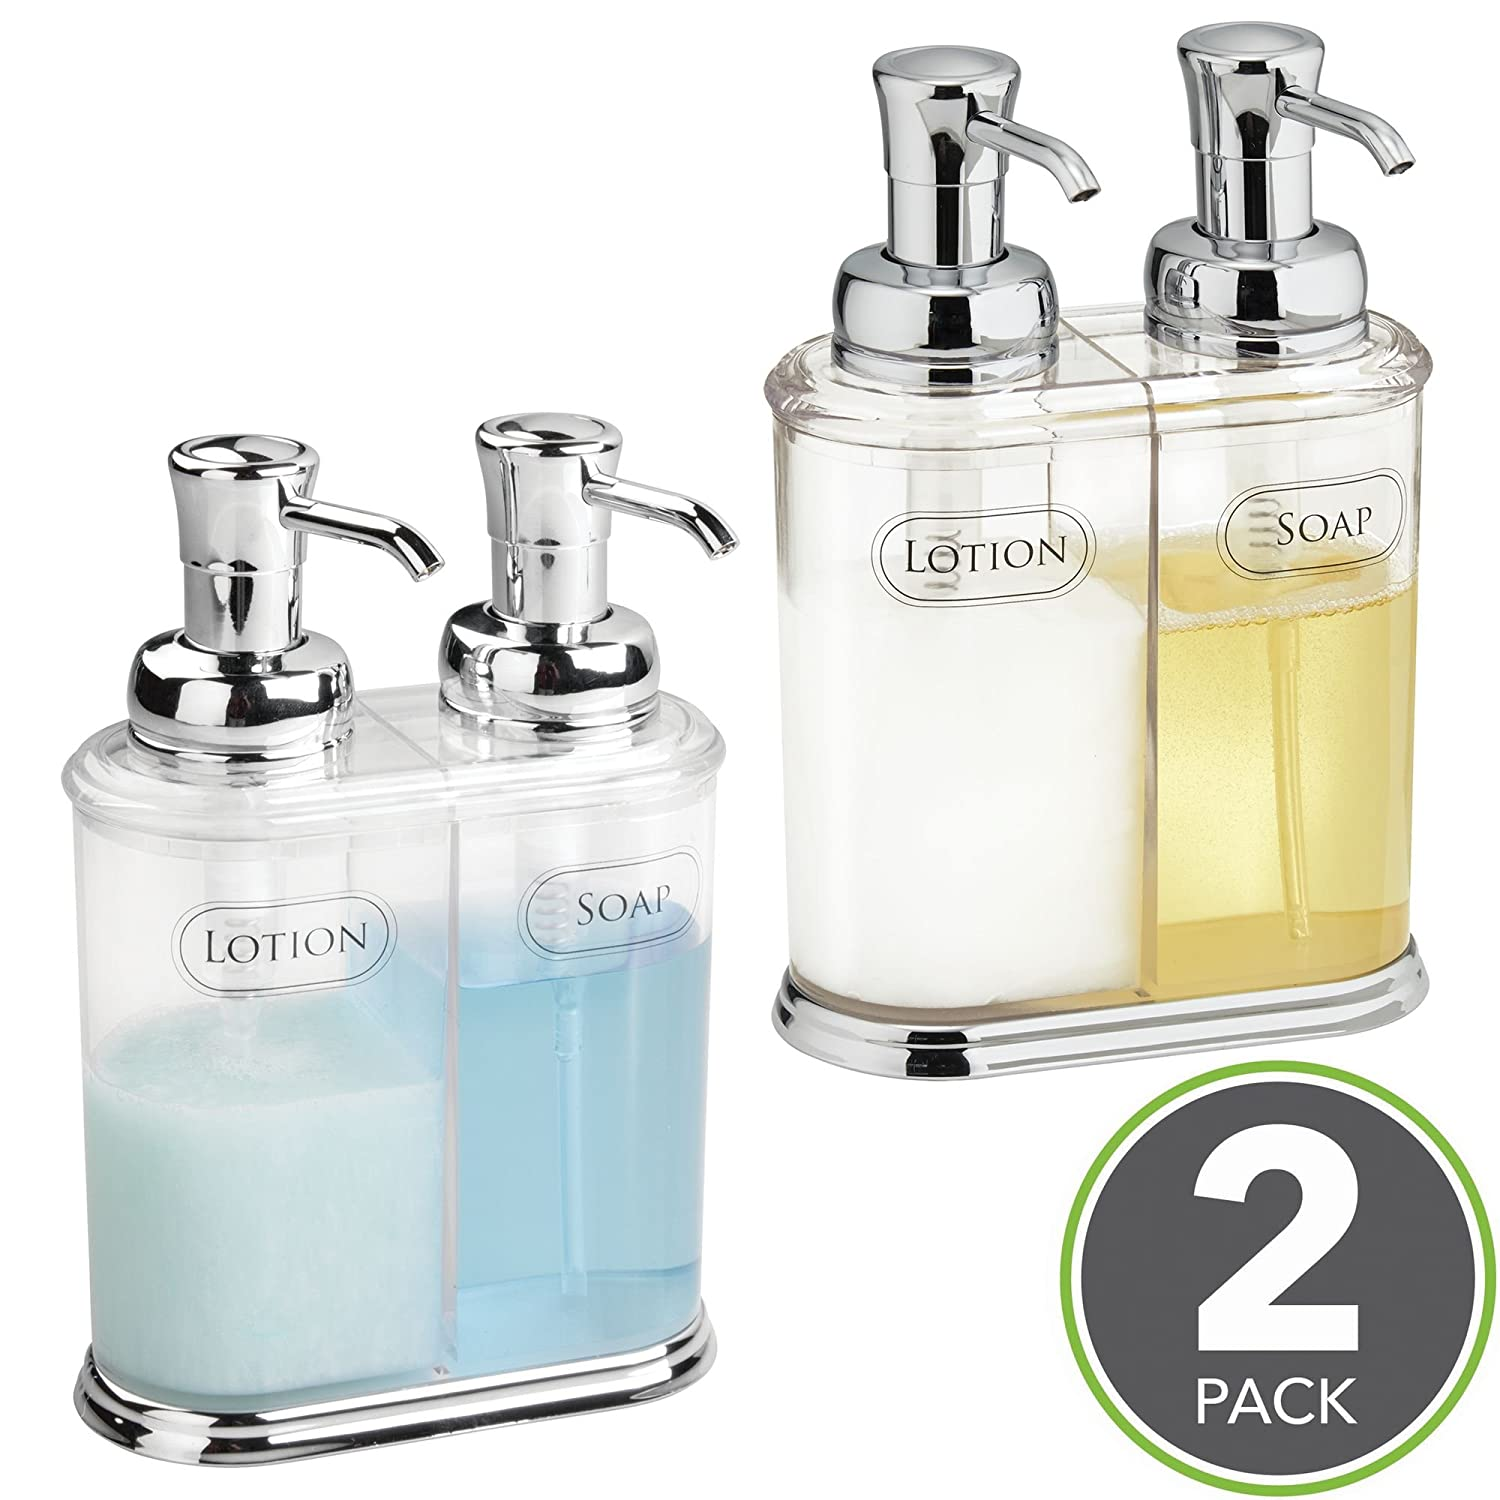 mDesign Refillable Soap Dispenser Duo - Double Pump Soap Dispenser - Hand Wash Dispenser - Made of Plastic with Chrome Pump Head - Approx. 350 ml Capacity - for Kitchens & Bathrooms - Pack of 2 MetroDecor